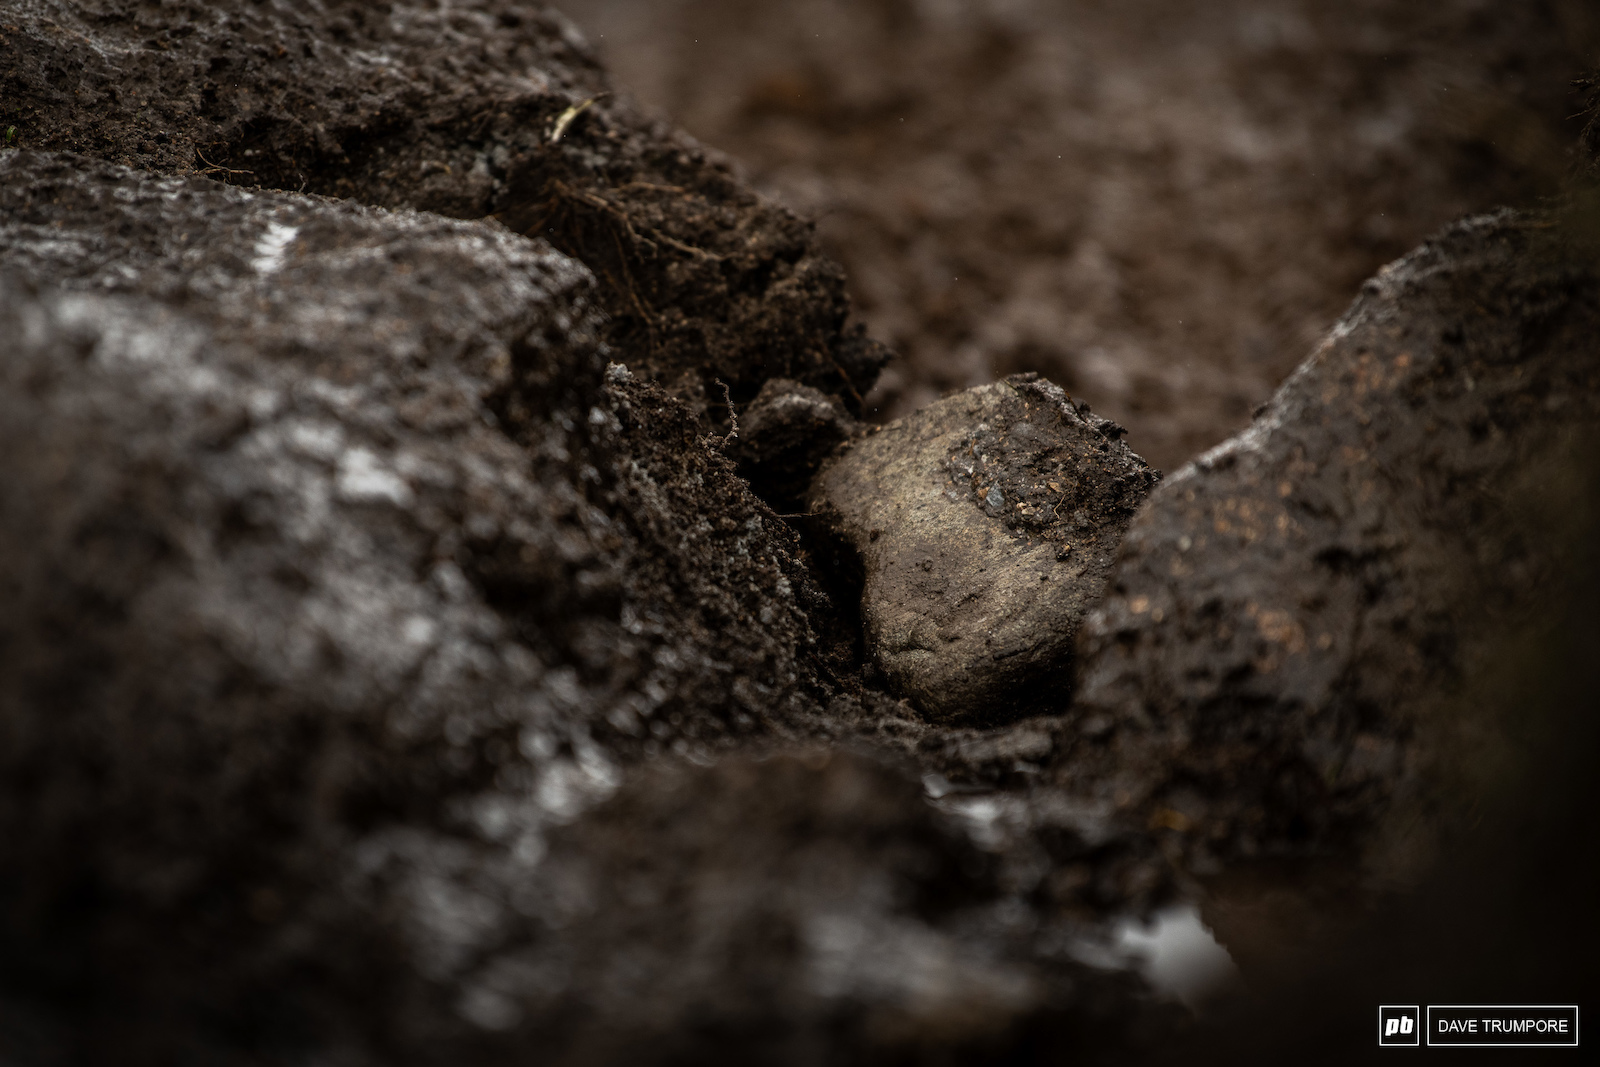 The rocks are coming loose in some of the more saturated sections of track. More than a few riders hit the deck after finding one of these grenades hiding in a normally clean racing line.